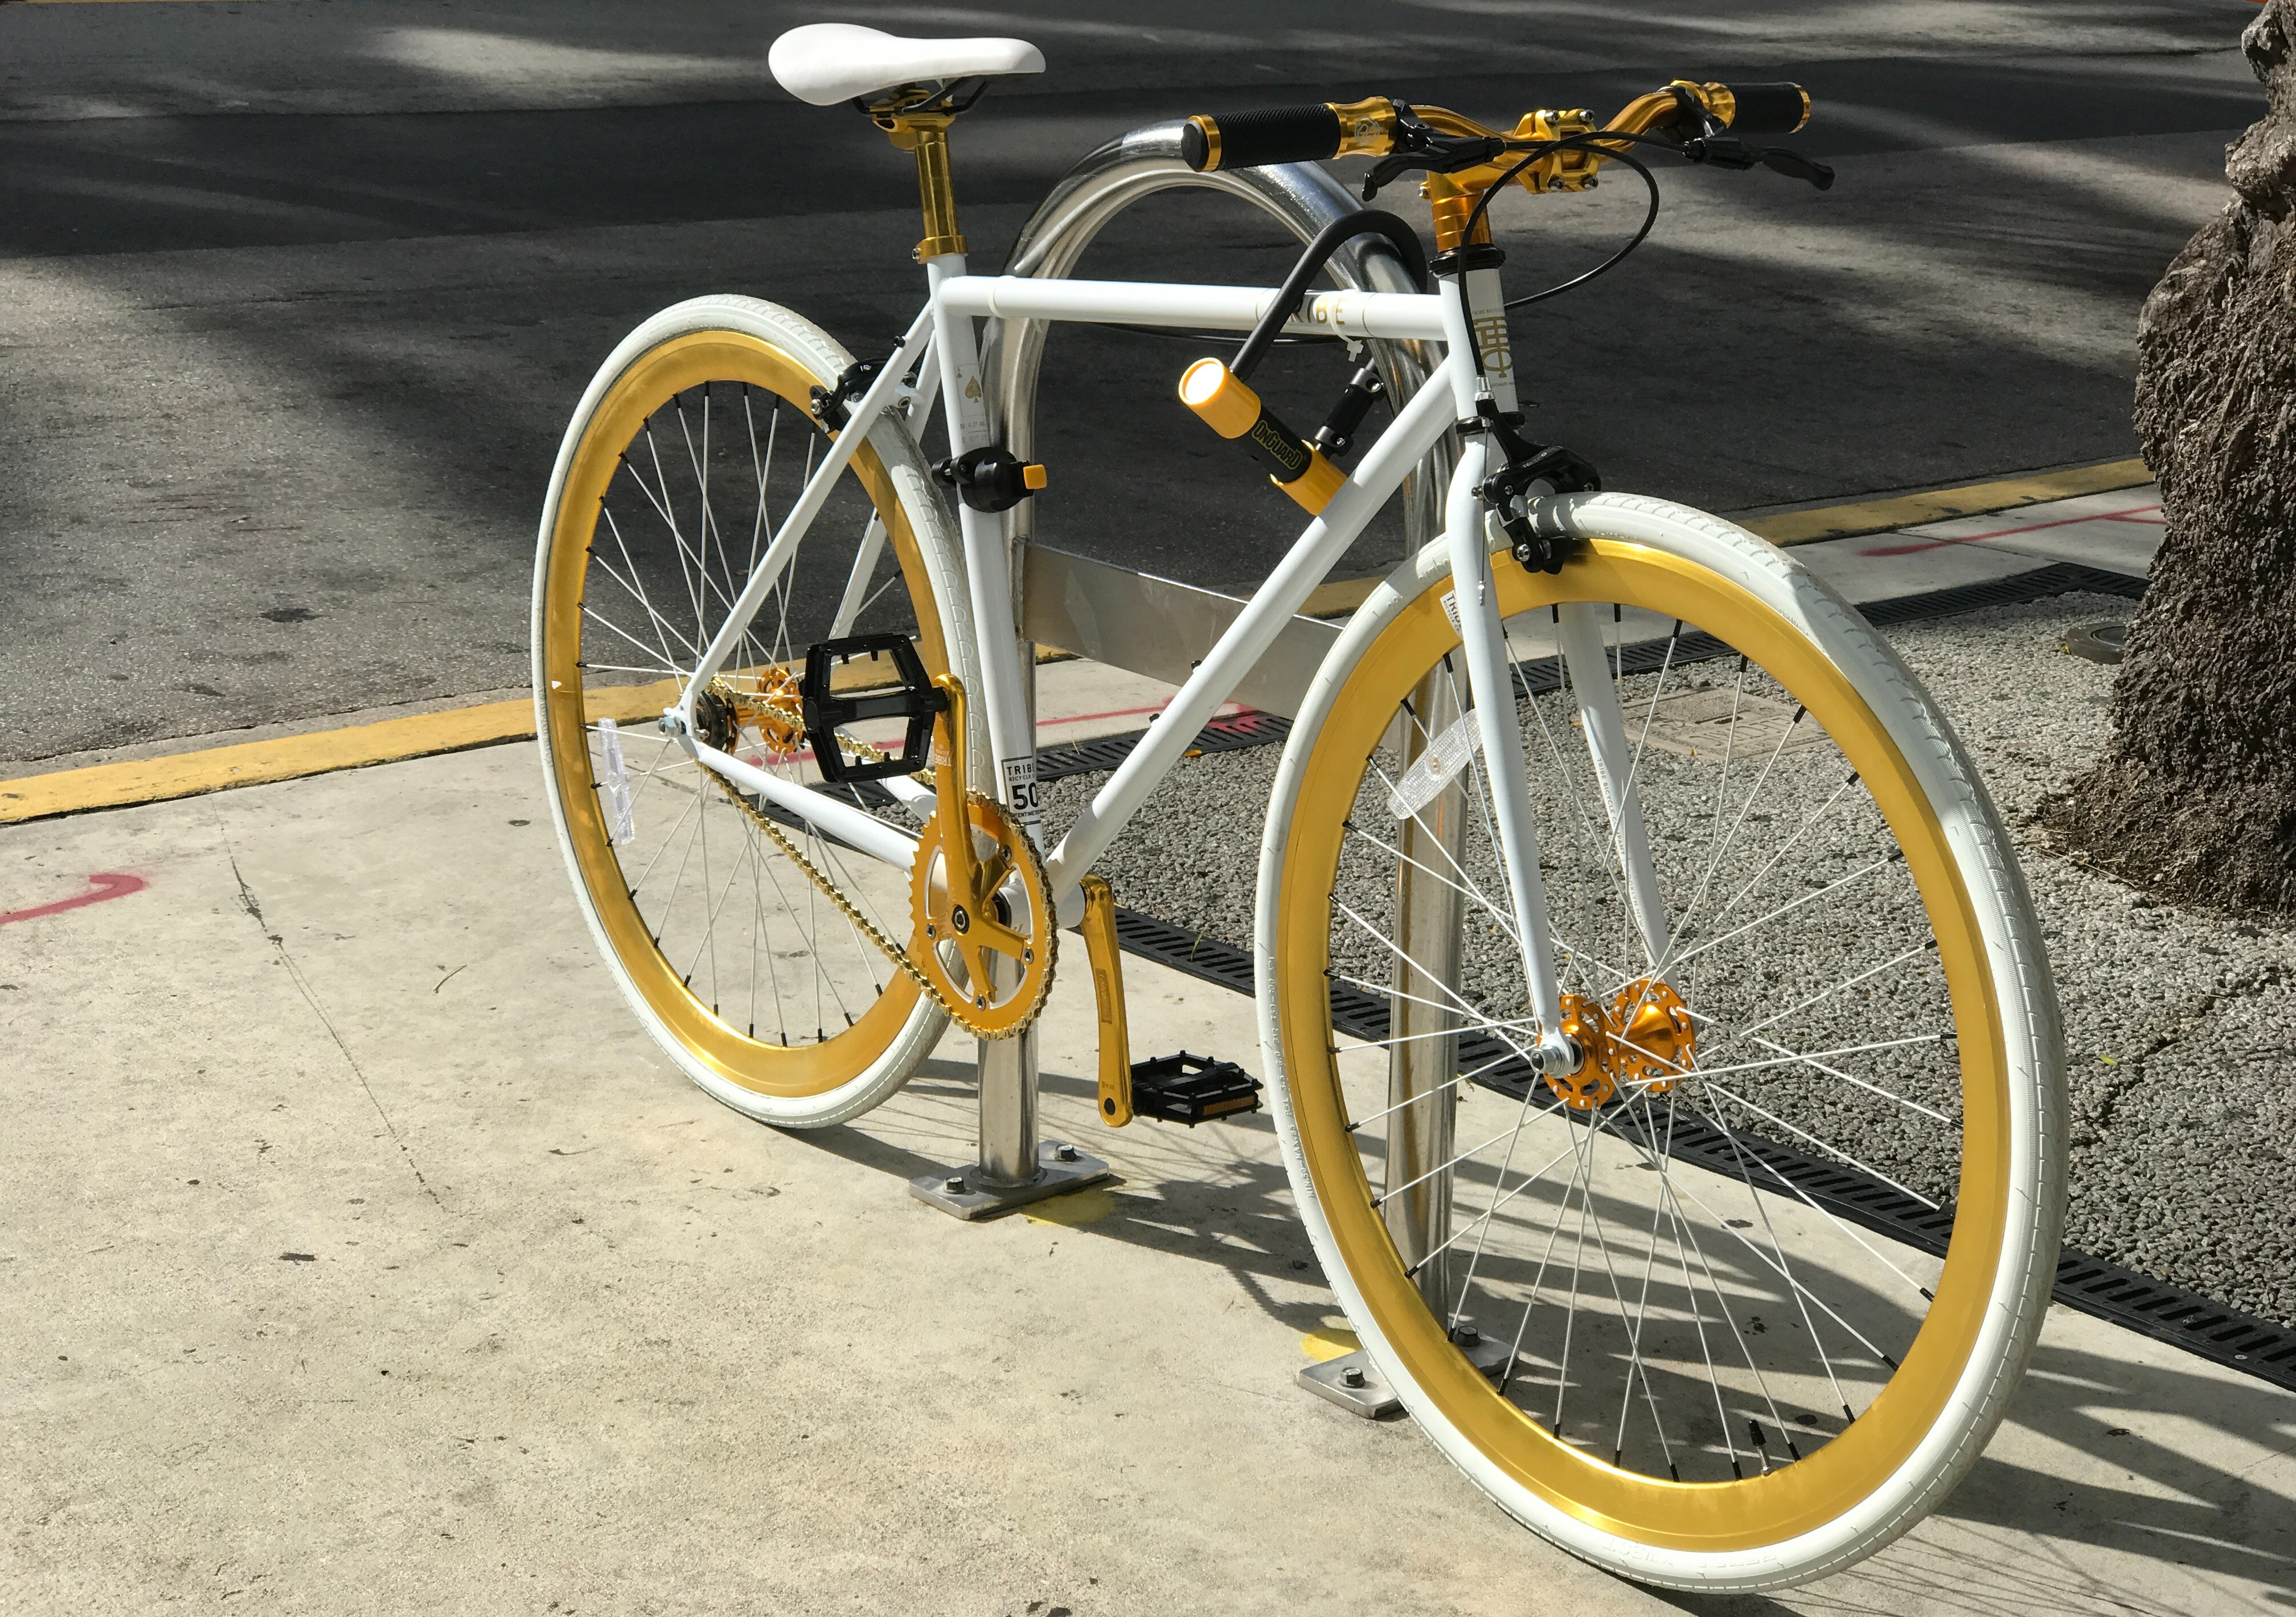 asphalt-bicycle-bike-255934